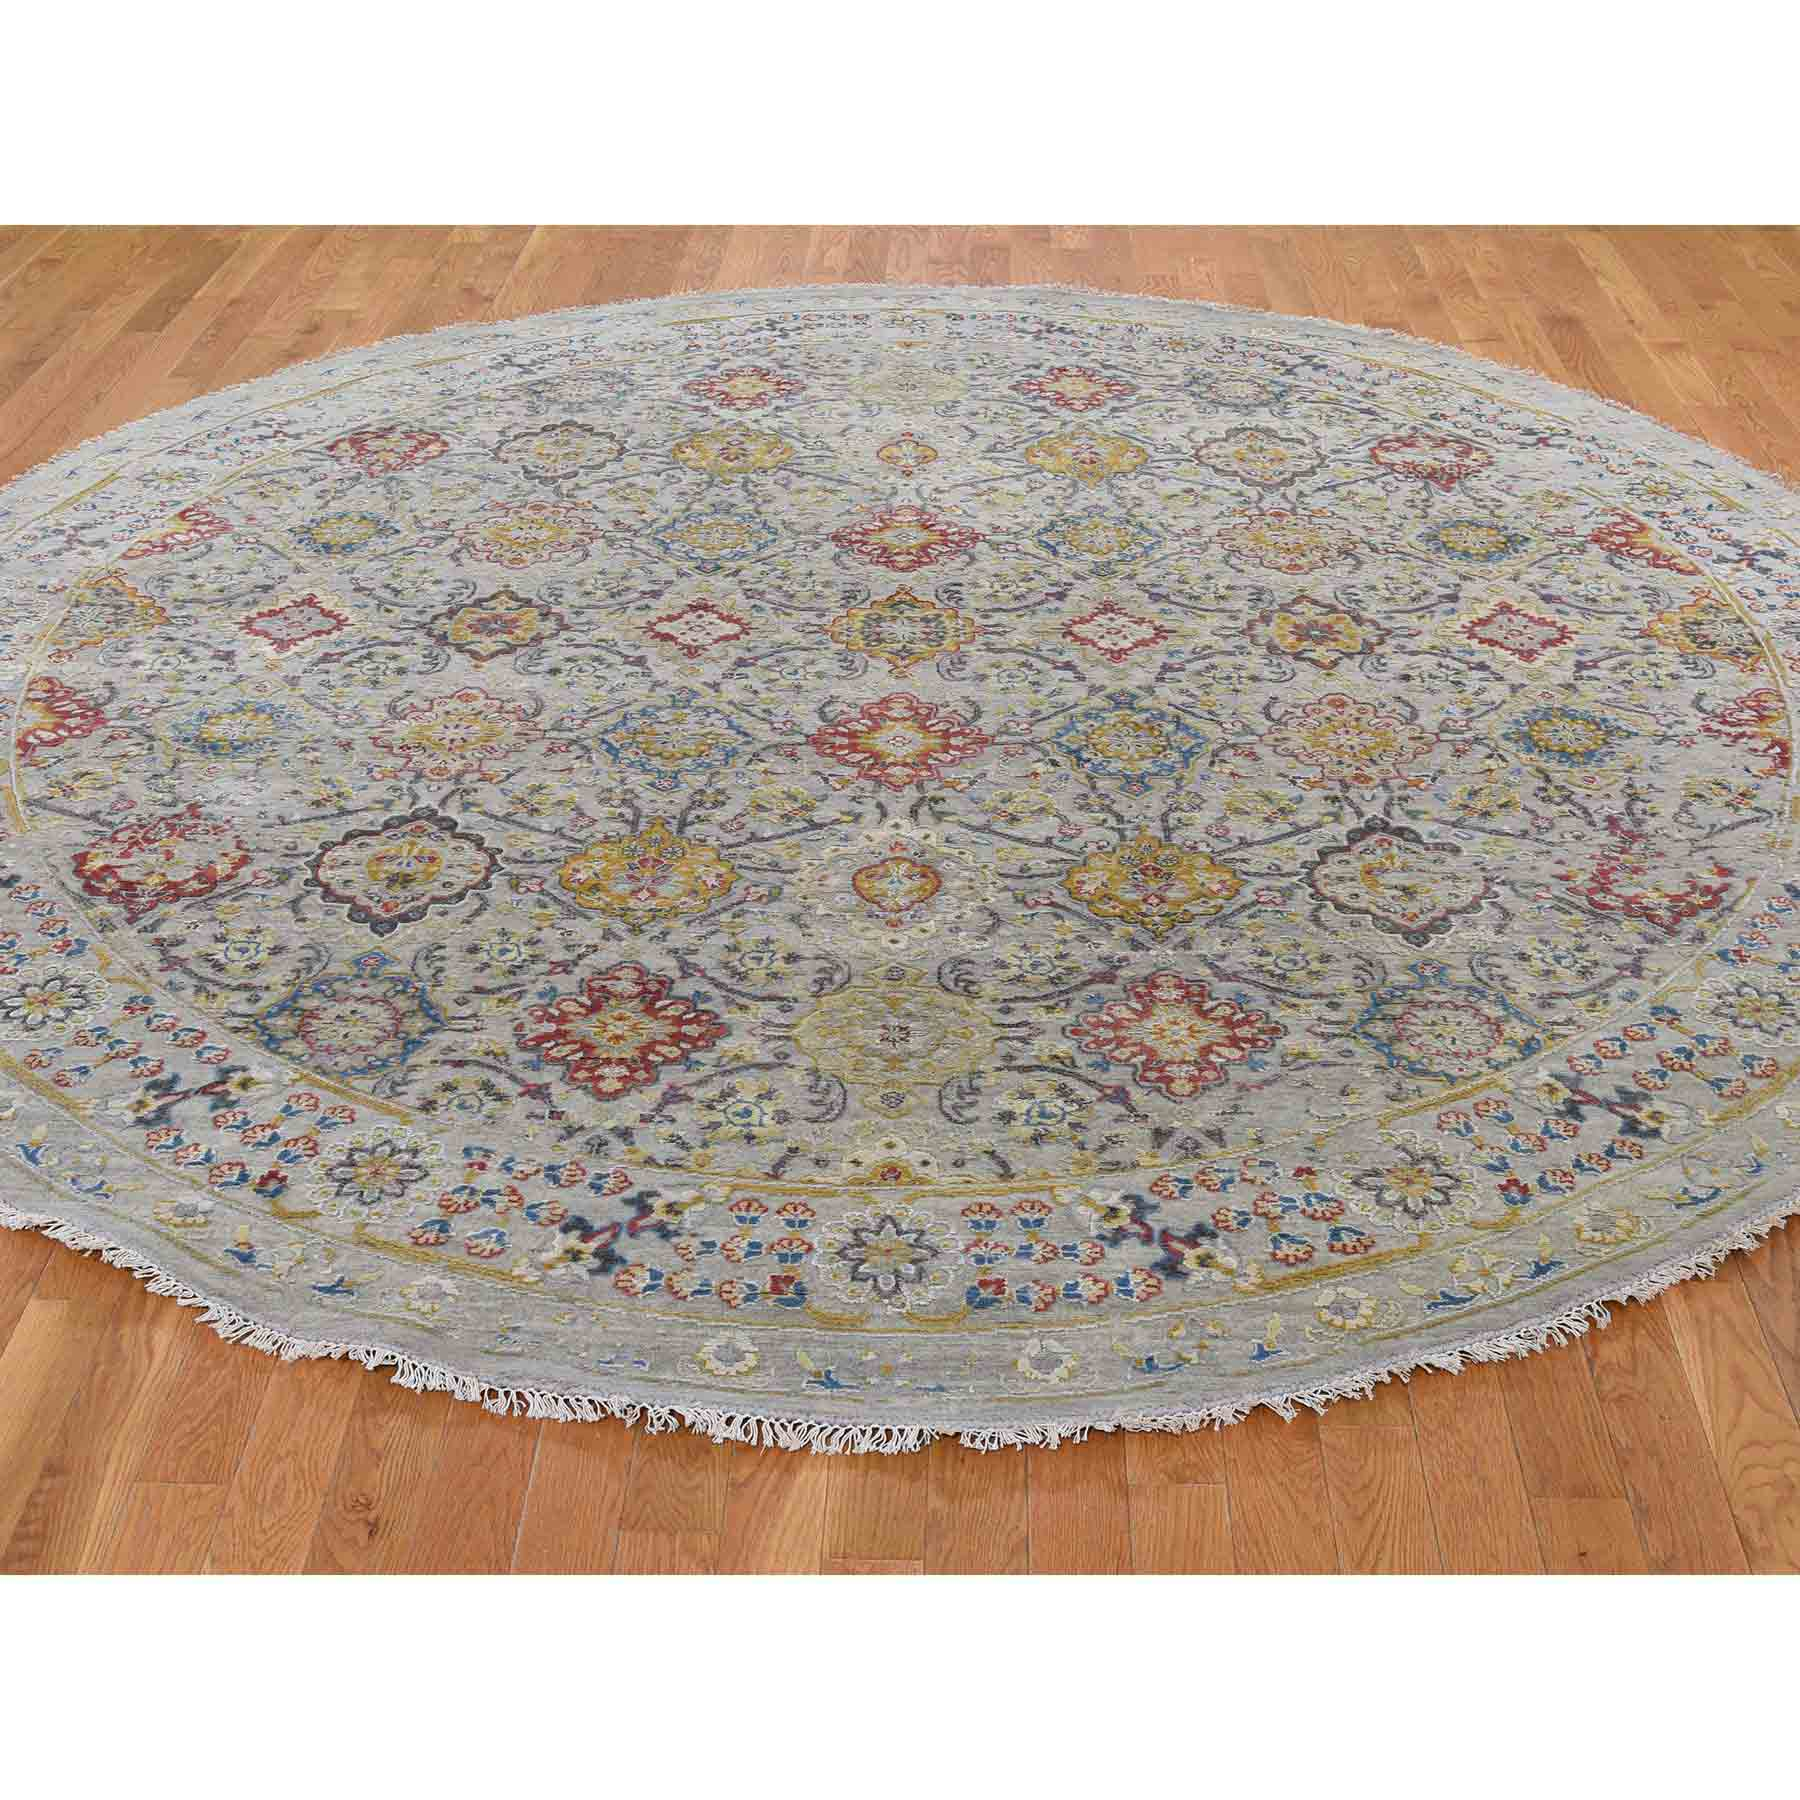 Transitional-Hand-Knotted-Rug-231045